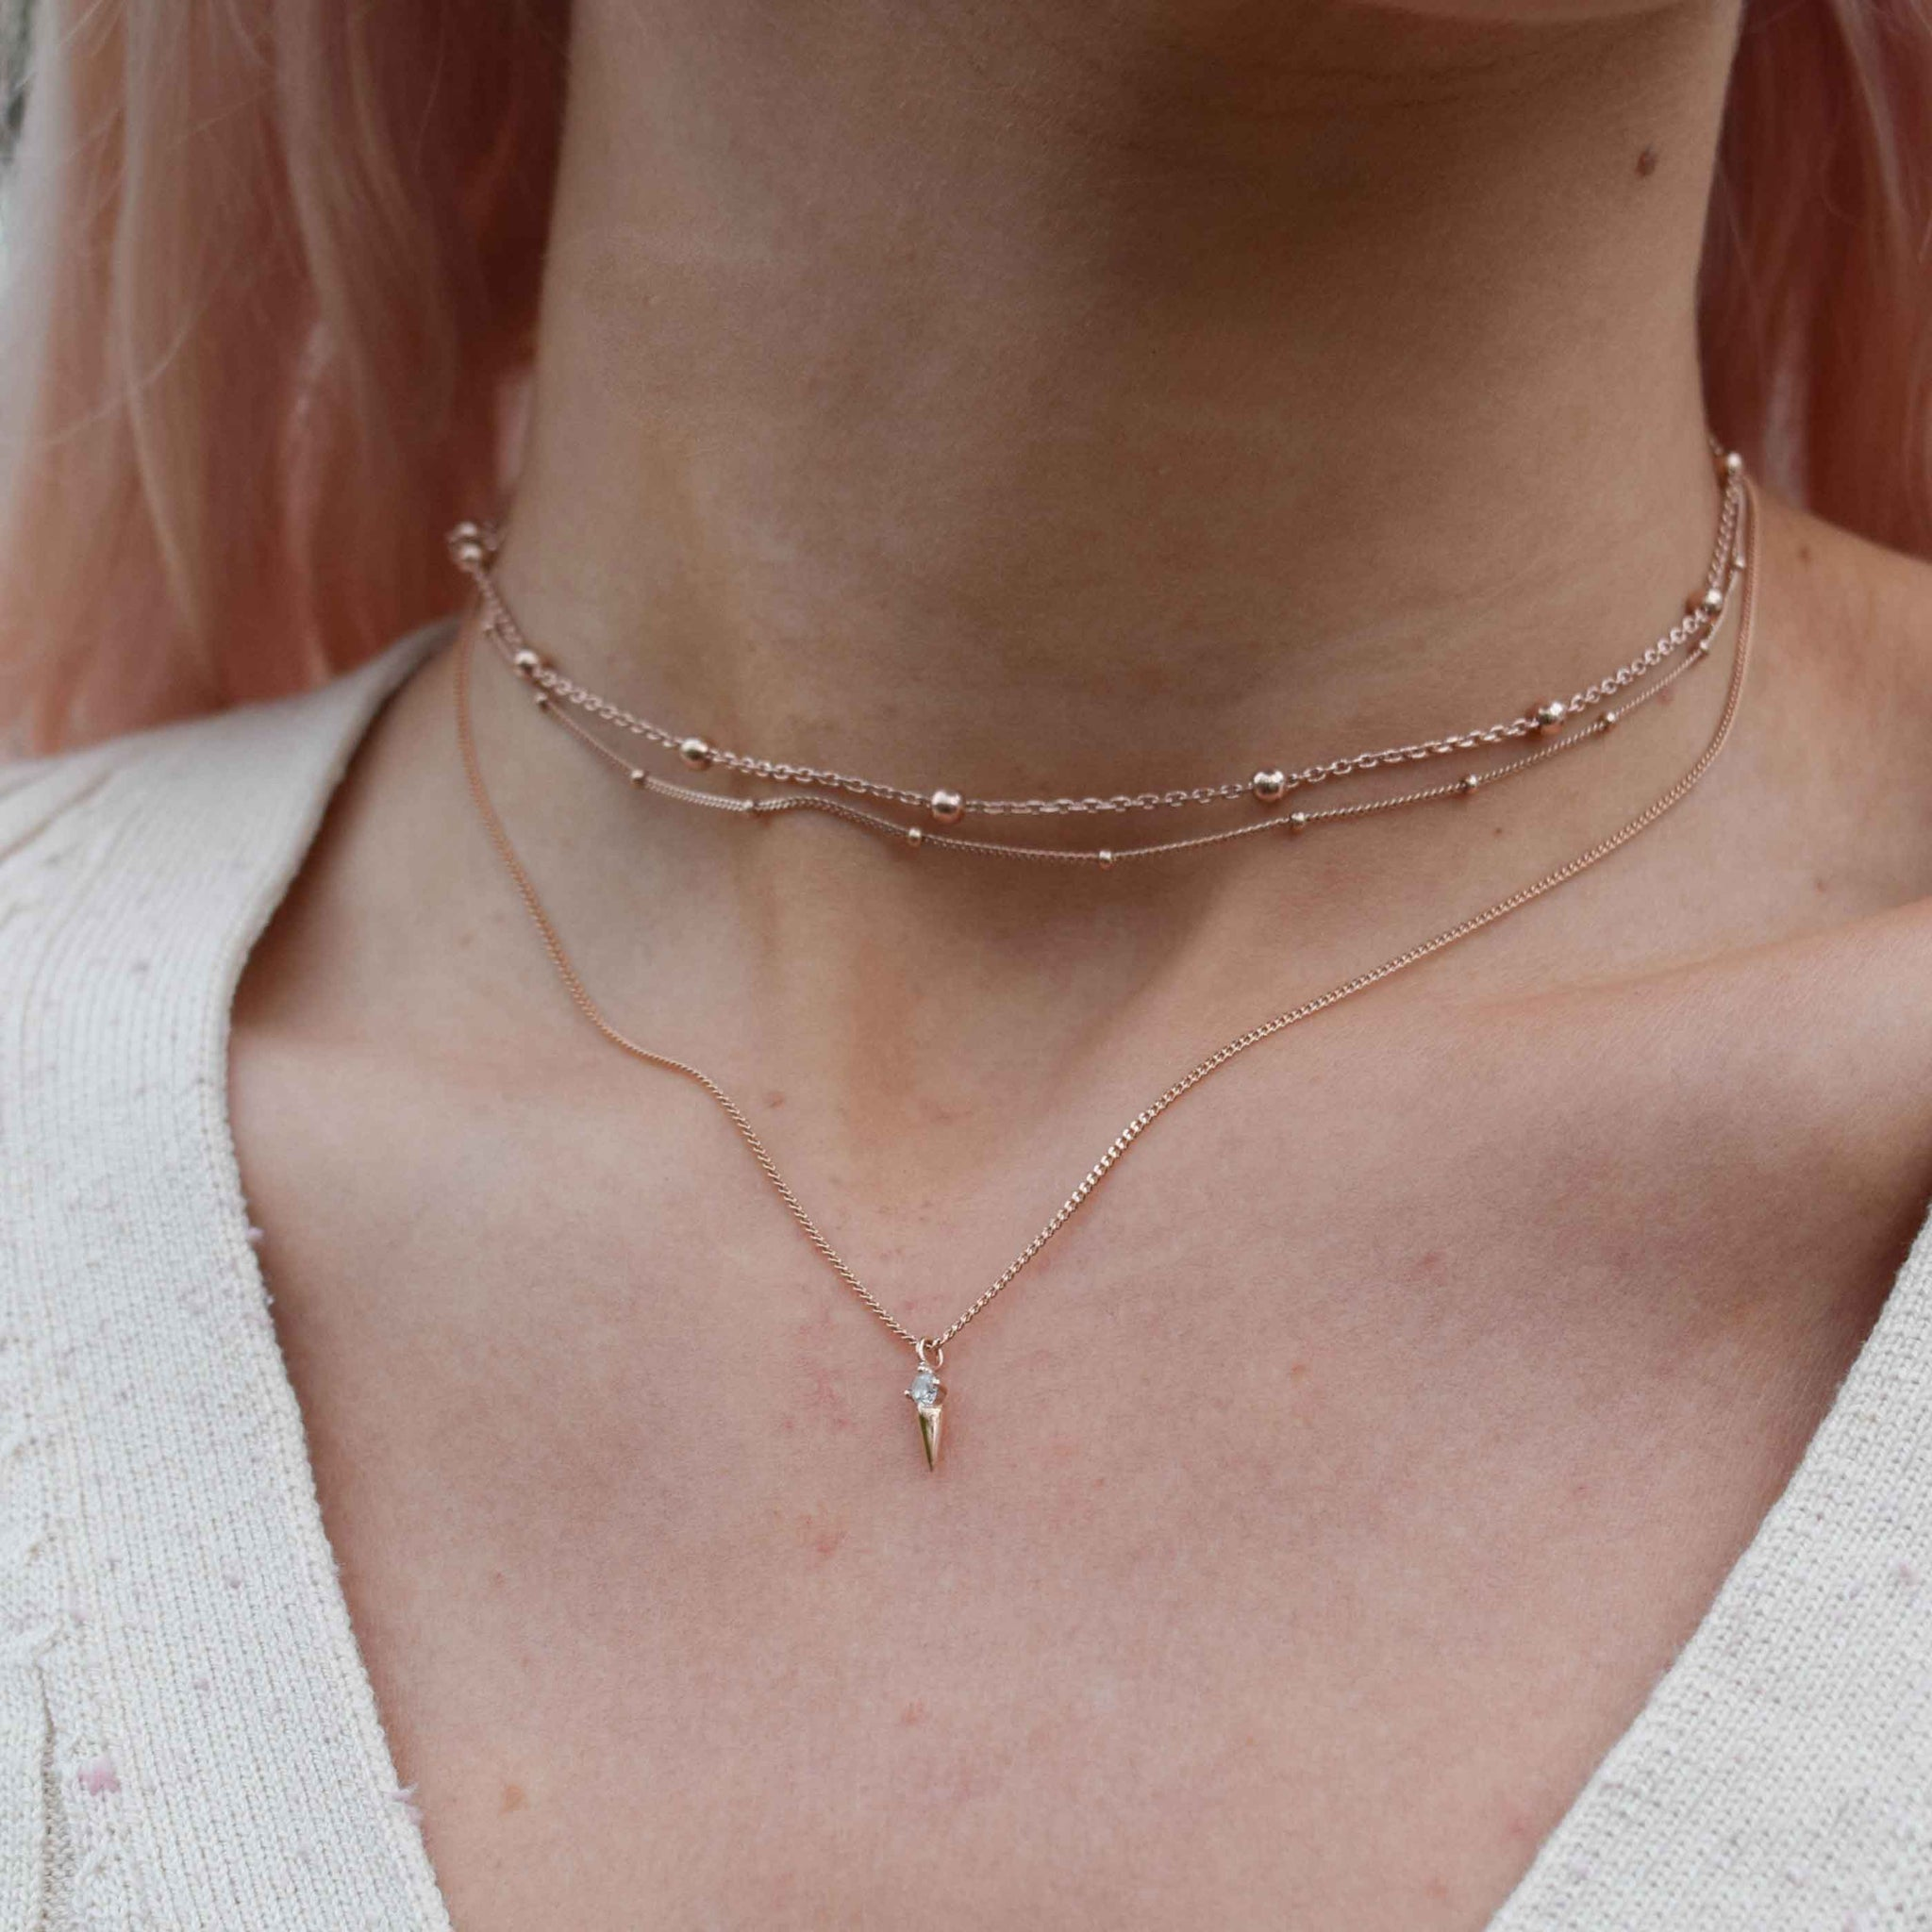 Basic Small Beaded Choker in Rose Gold worn with pendant necklace